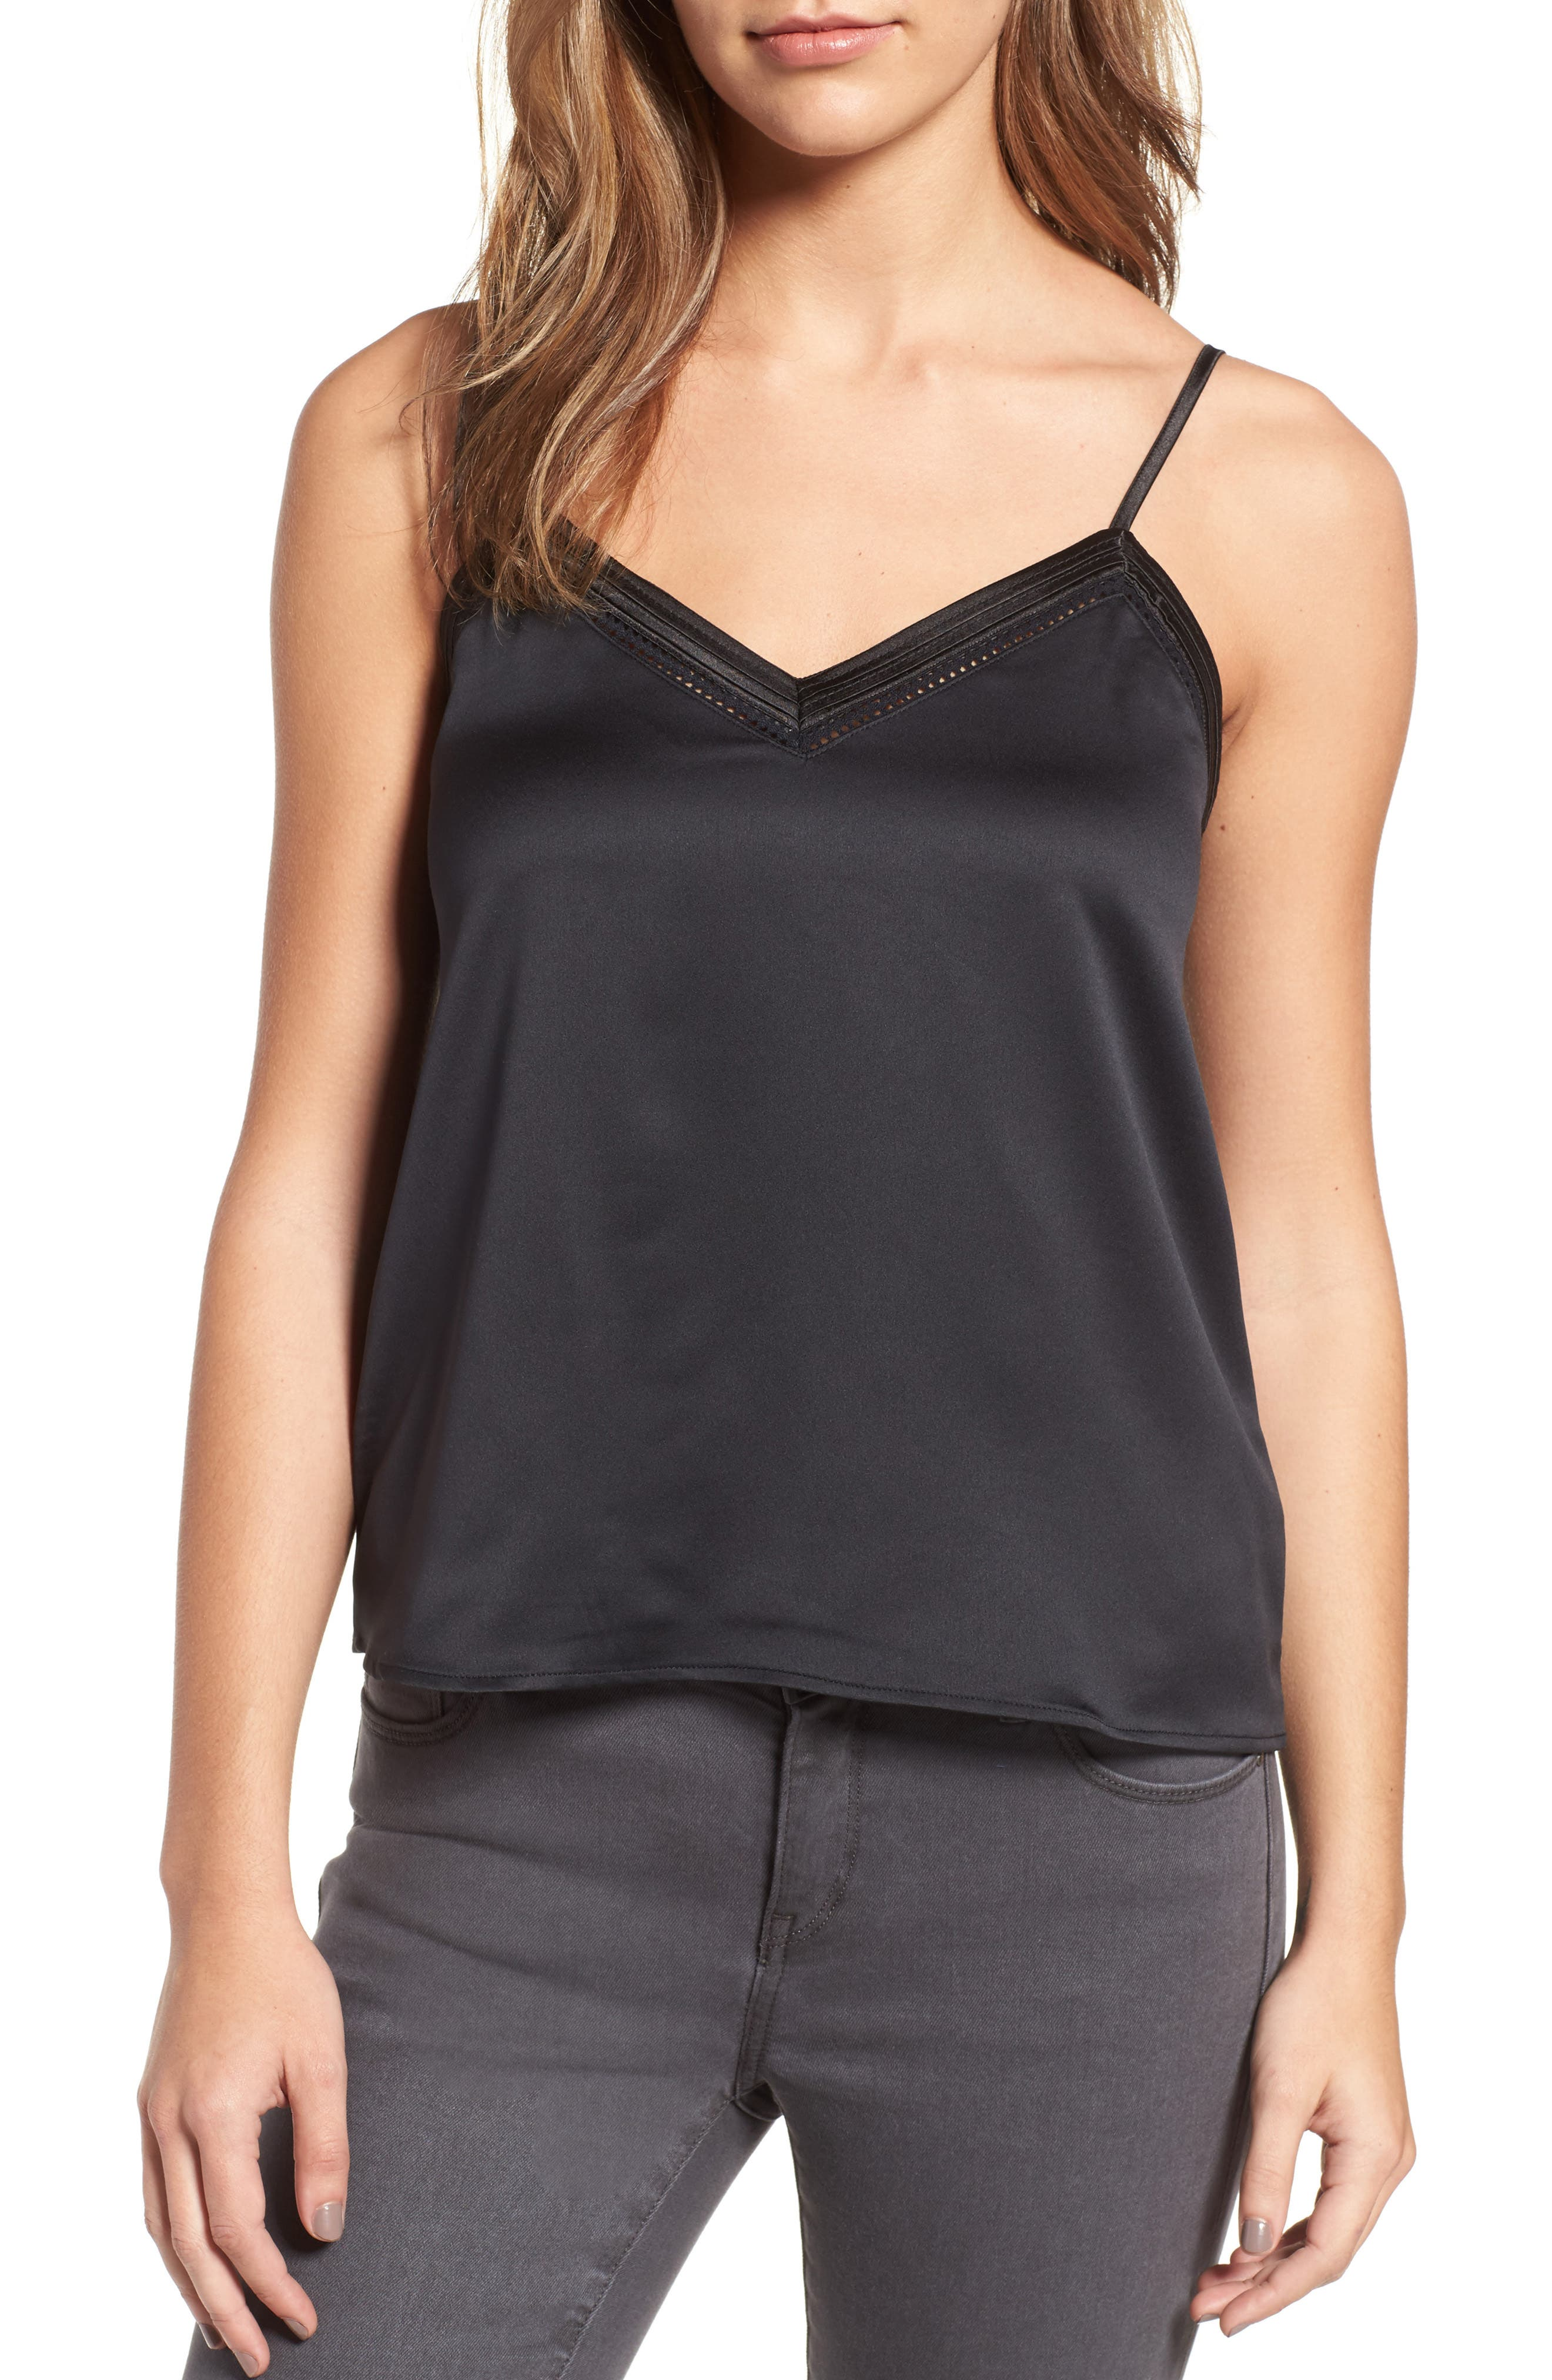 SINCERELY JULES Satin Camisole